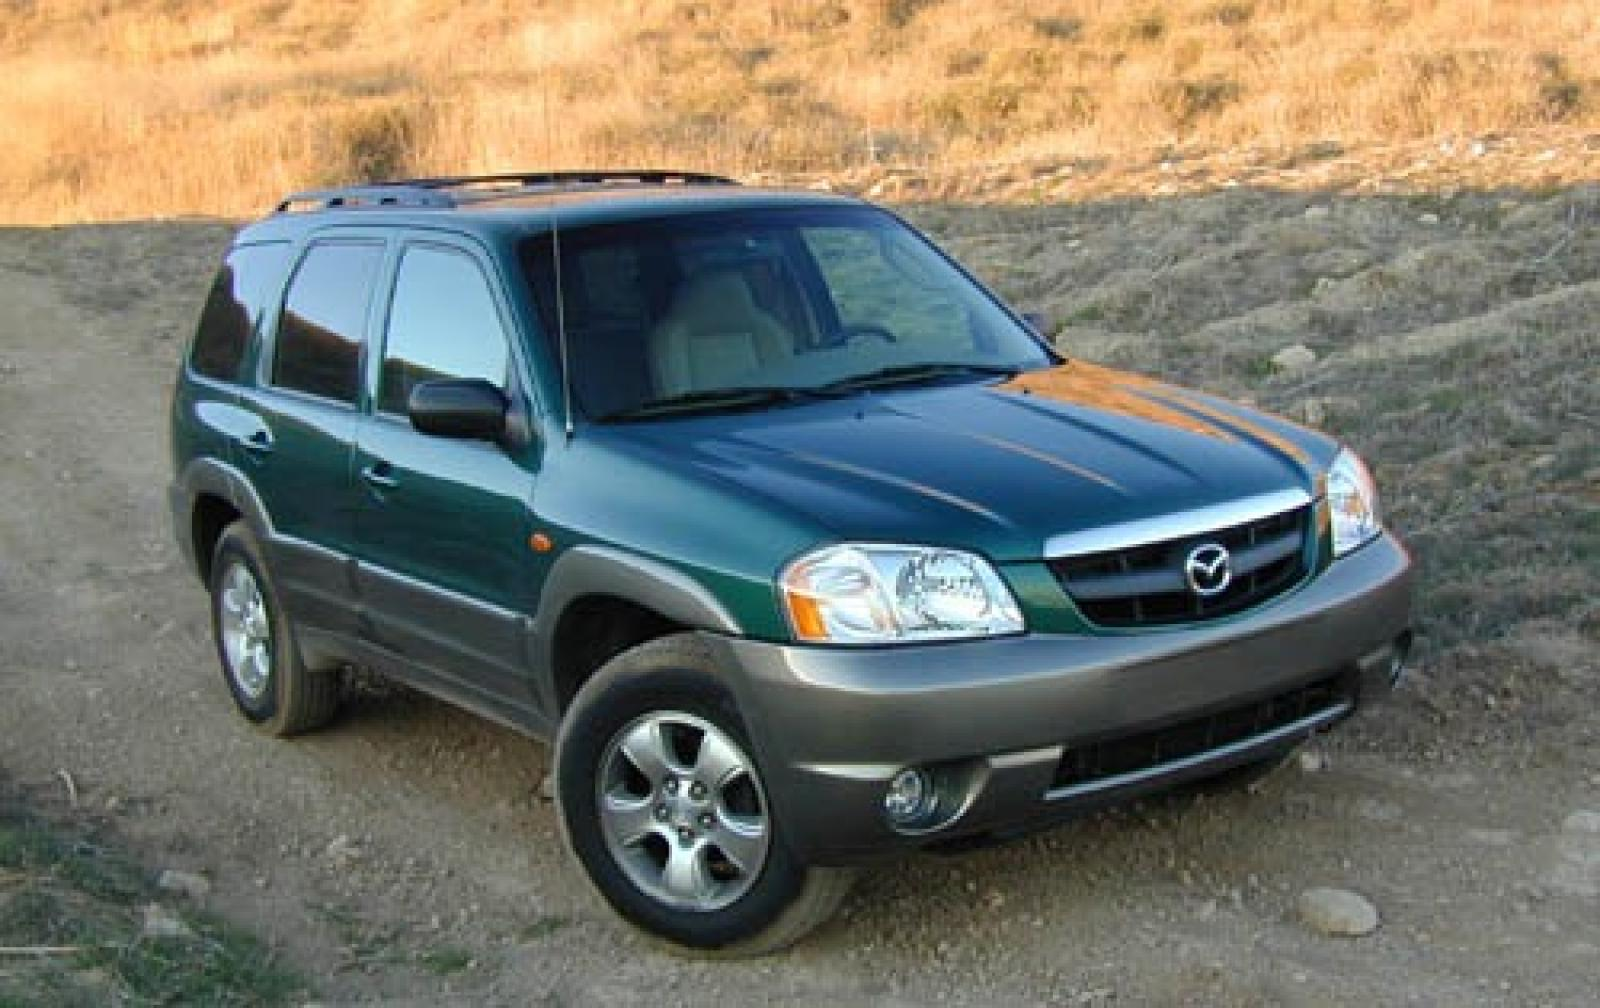 2003 mazda tribute information and photos zombiedrive. Black Bedroom Furniture Sets. Home Design Ideas